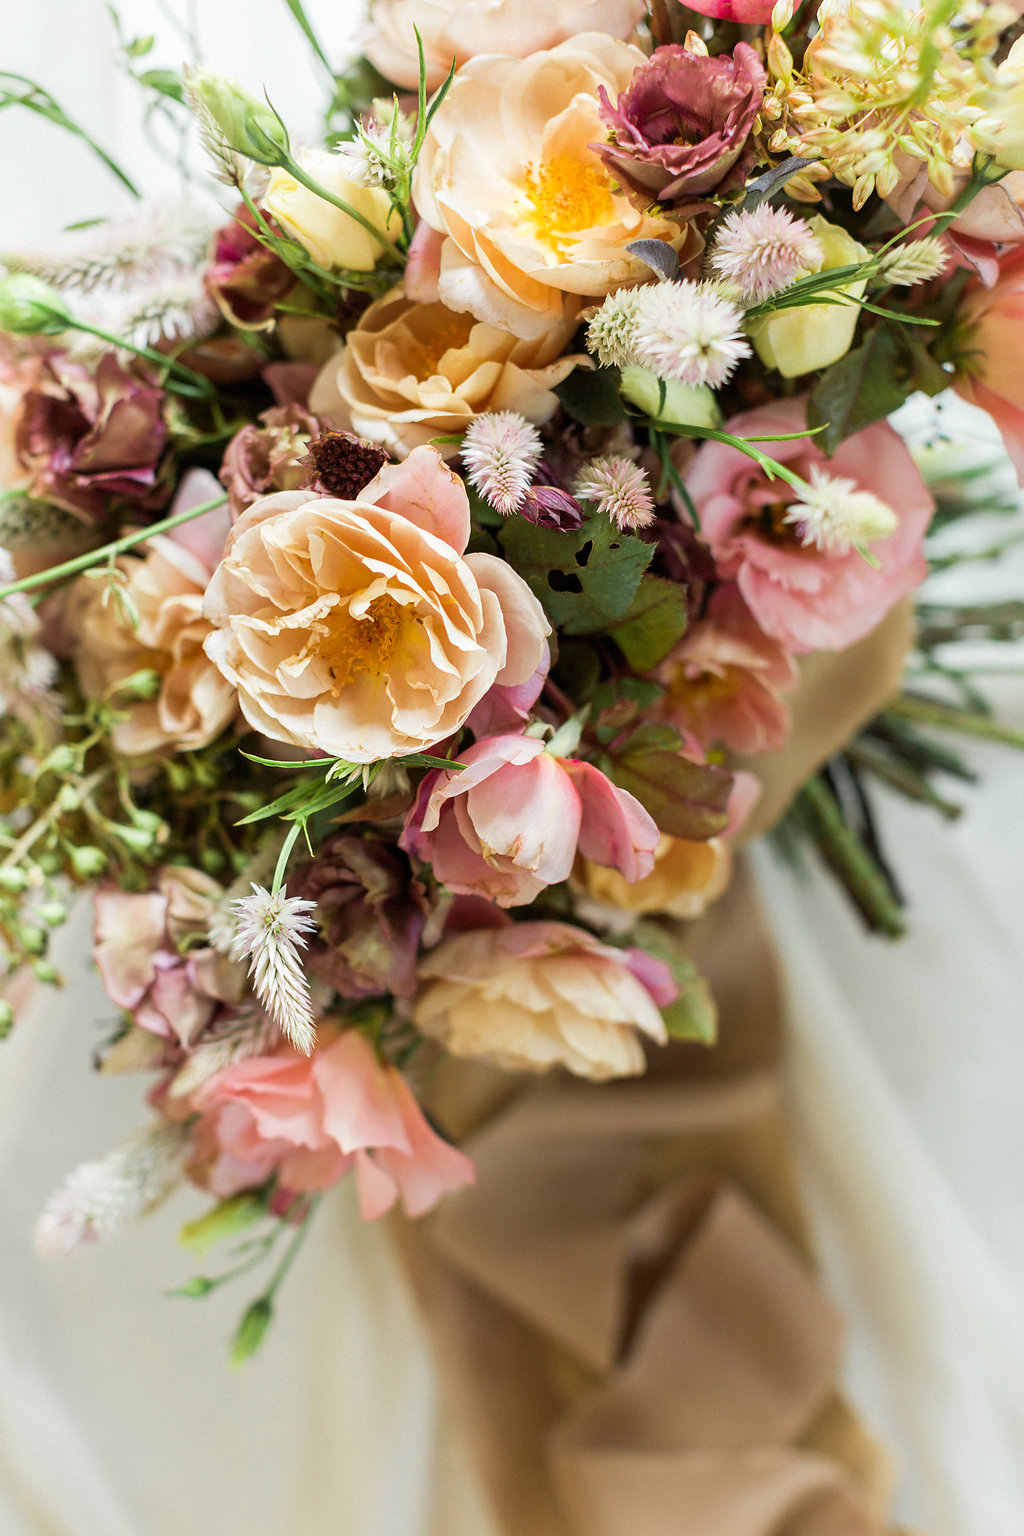 peachy pink wedding bouquets for fall - https://ruffledblog.com/cloudy-day-wedding-inspiration-with-a-hand-painted-bridal-gown